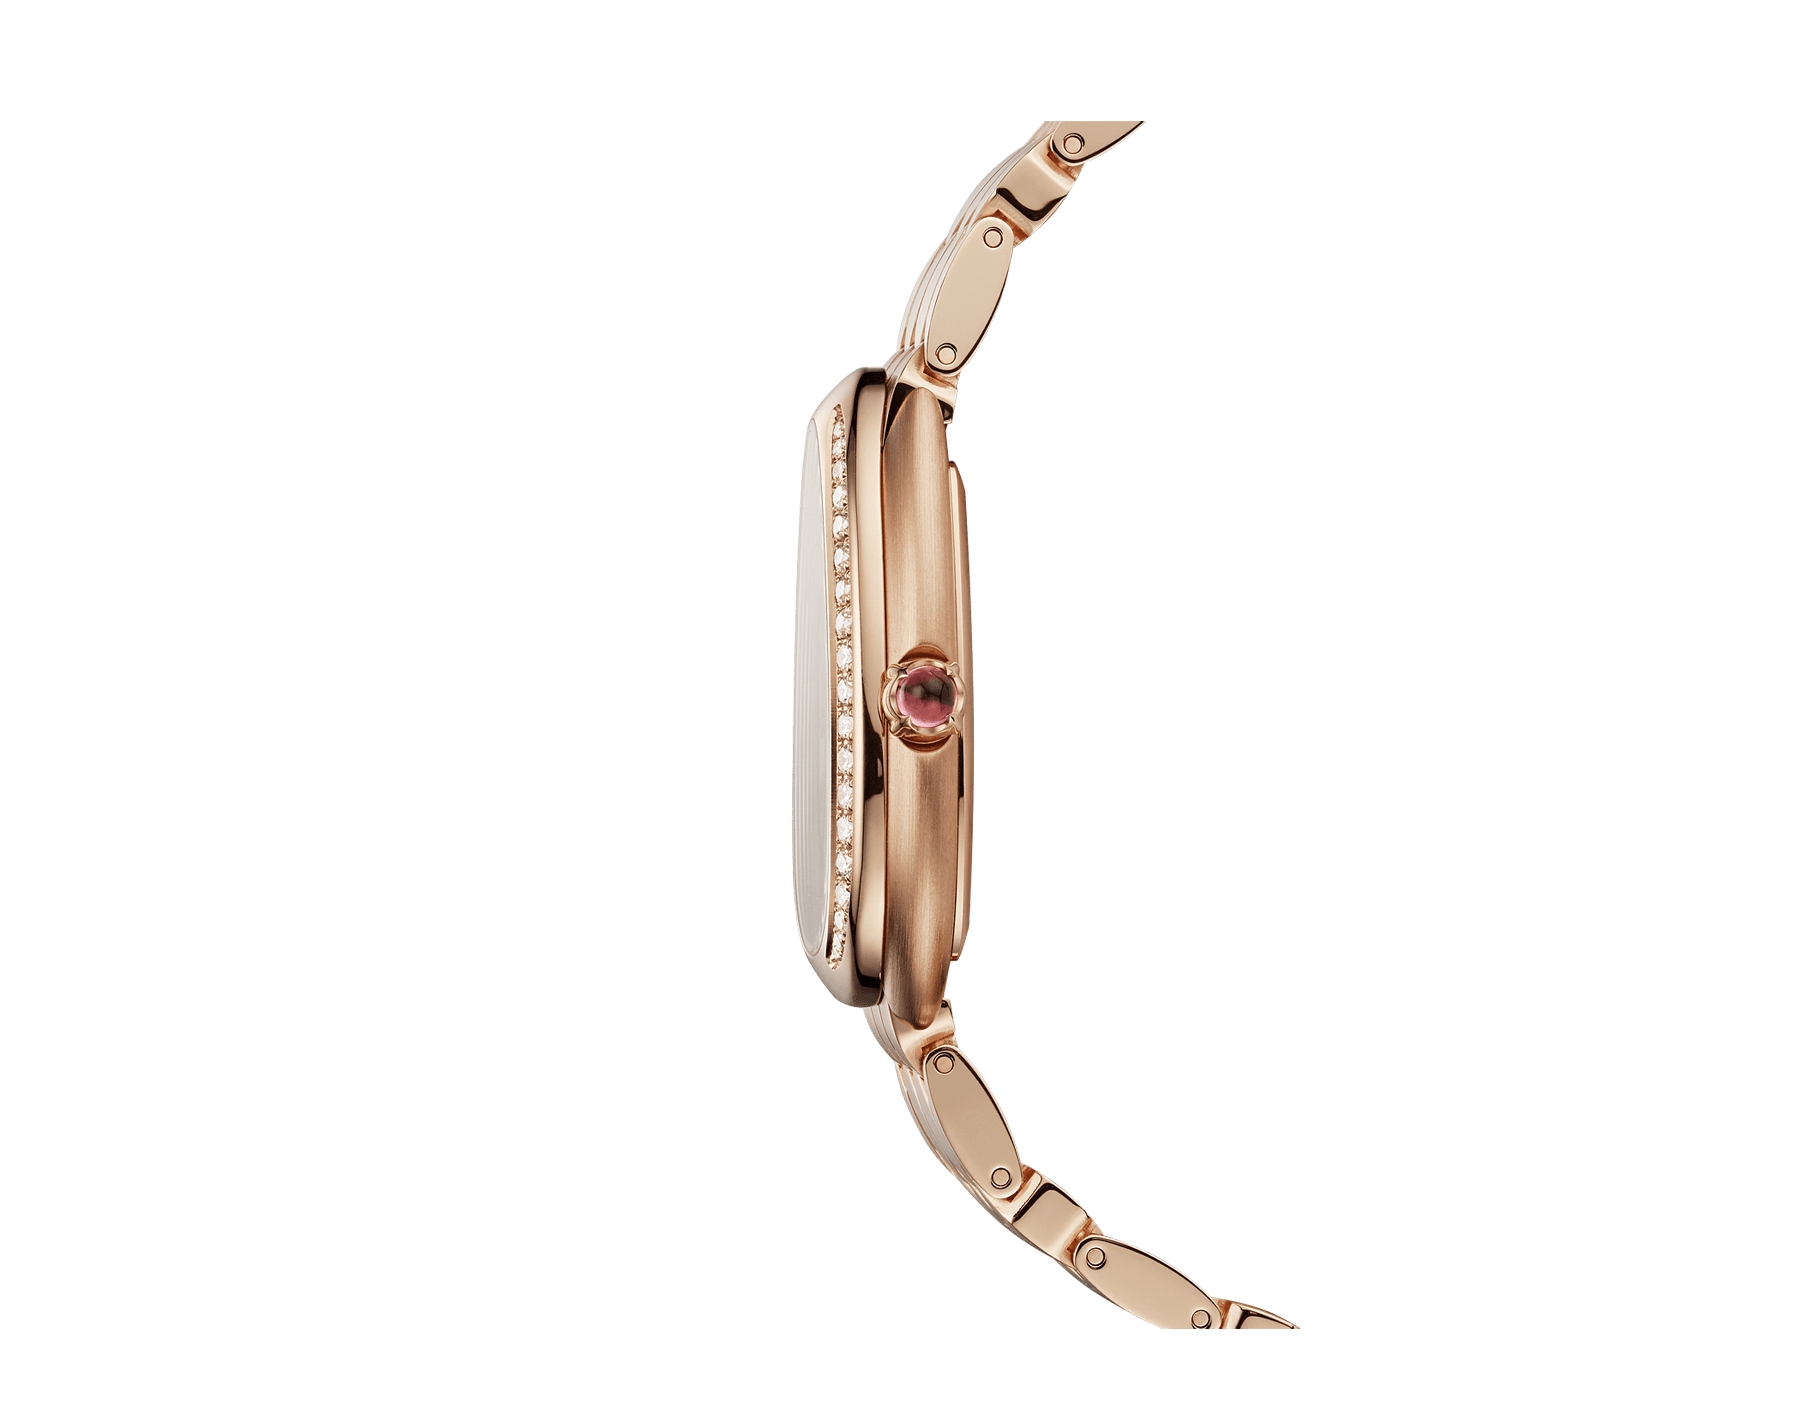 Serpenti Seduttori watch with 18 kt rose gold case, 18 kt rose gold bezel set with diamonds, white silver opaline dial and brushed 18 kt rose gold bracelet. 103169 image 3